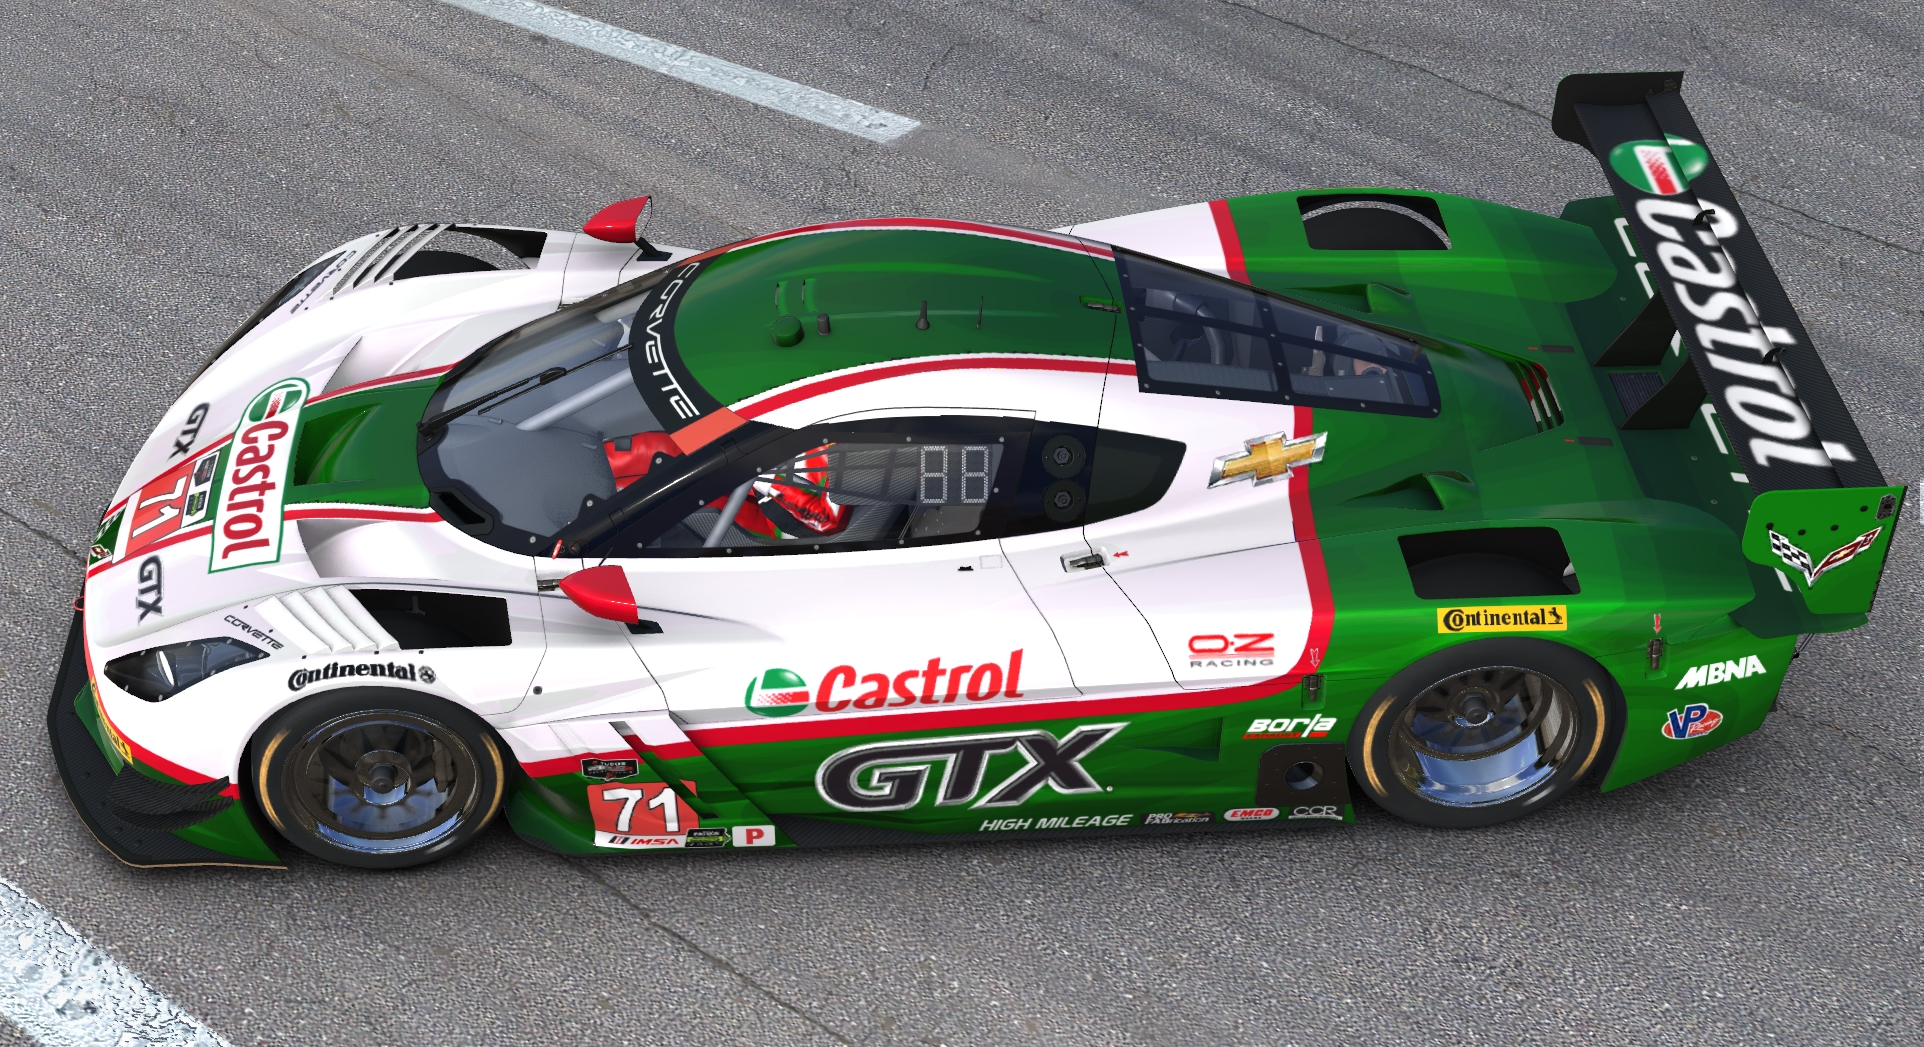 Preview of Castrol C7R DP by John Paquin